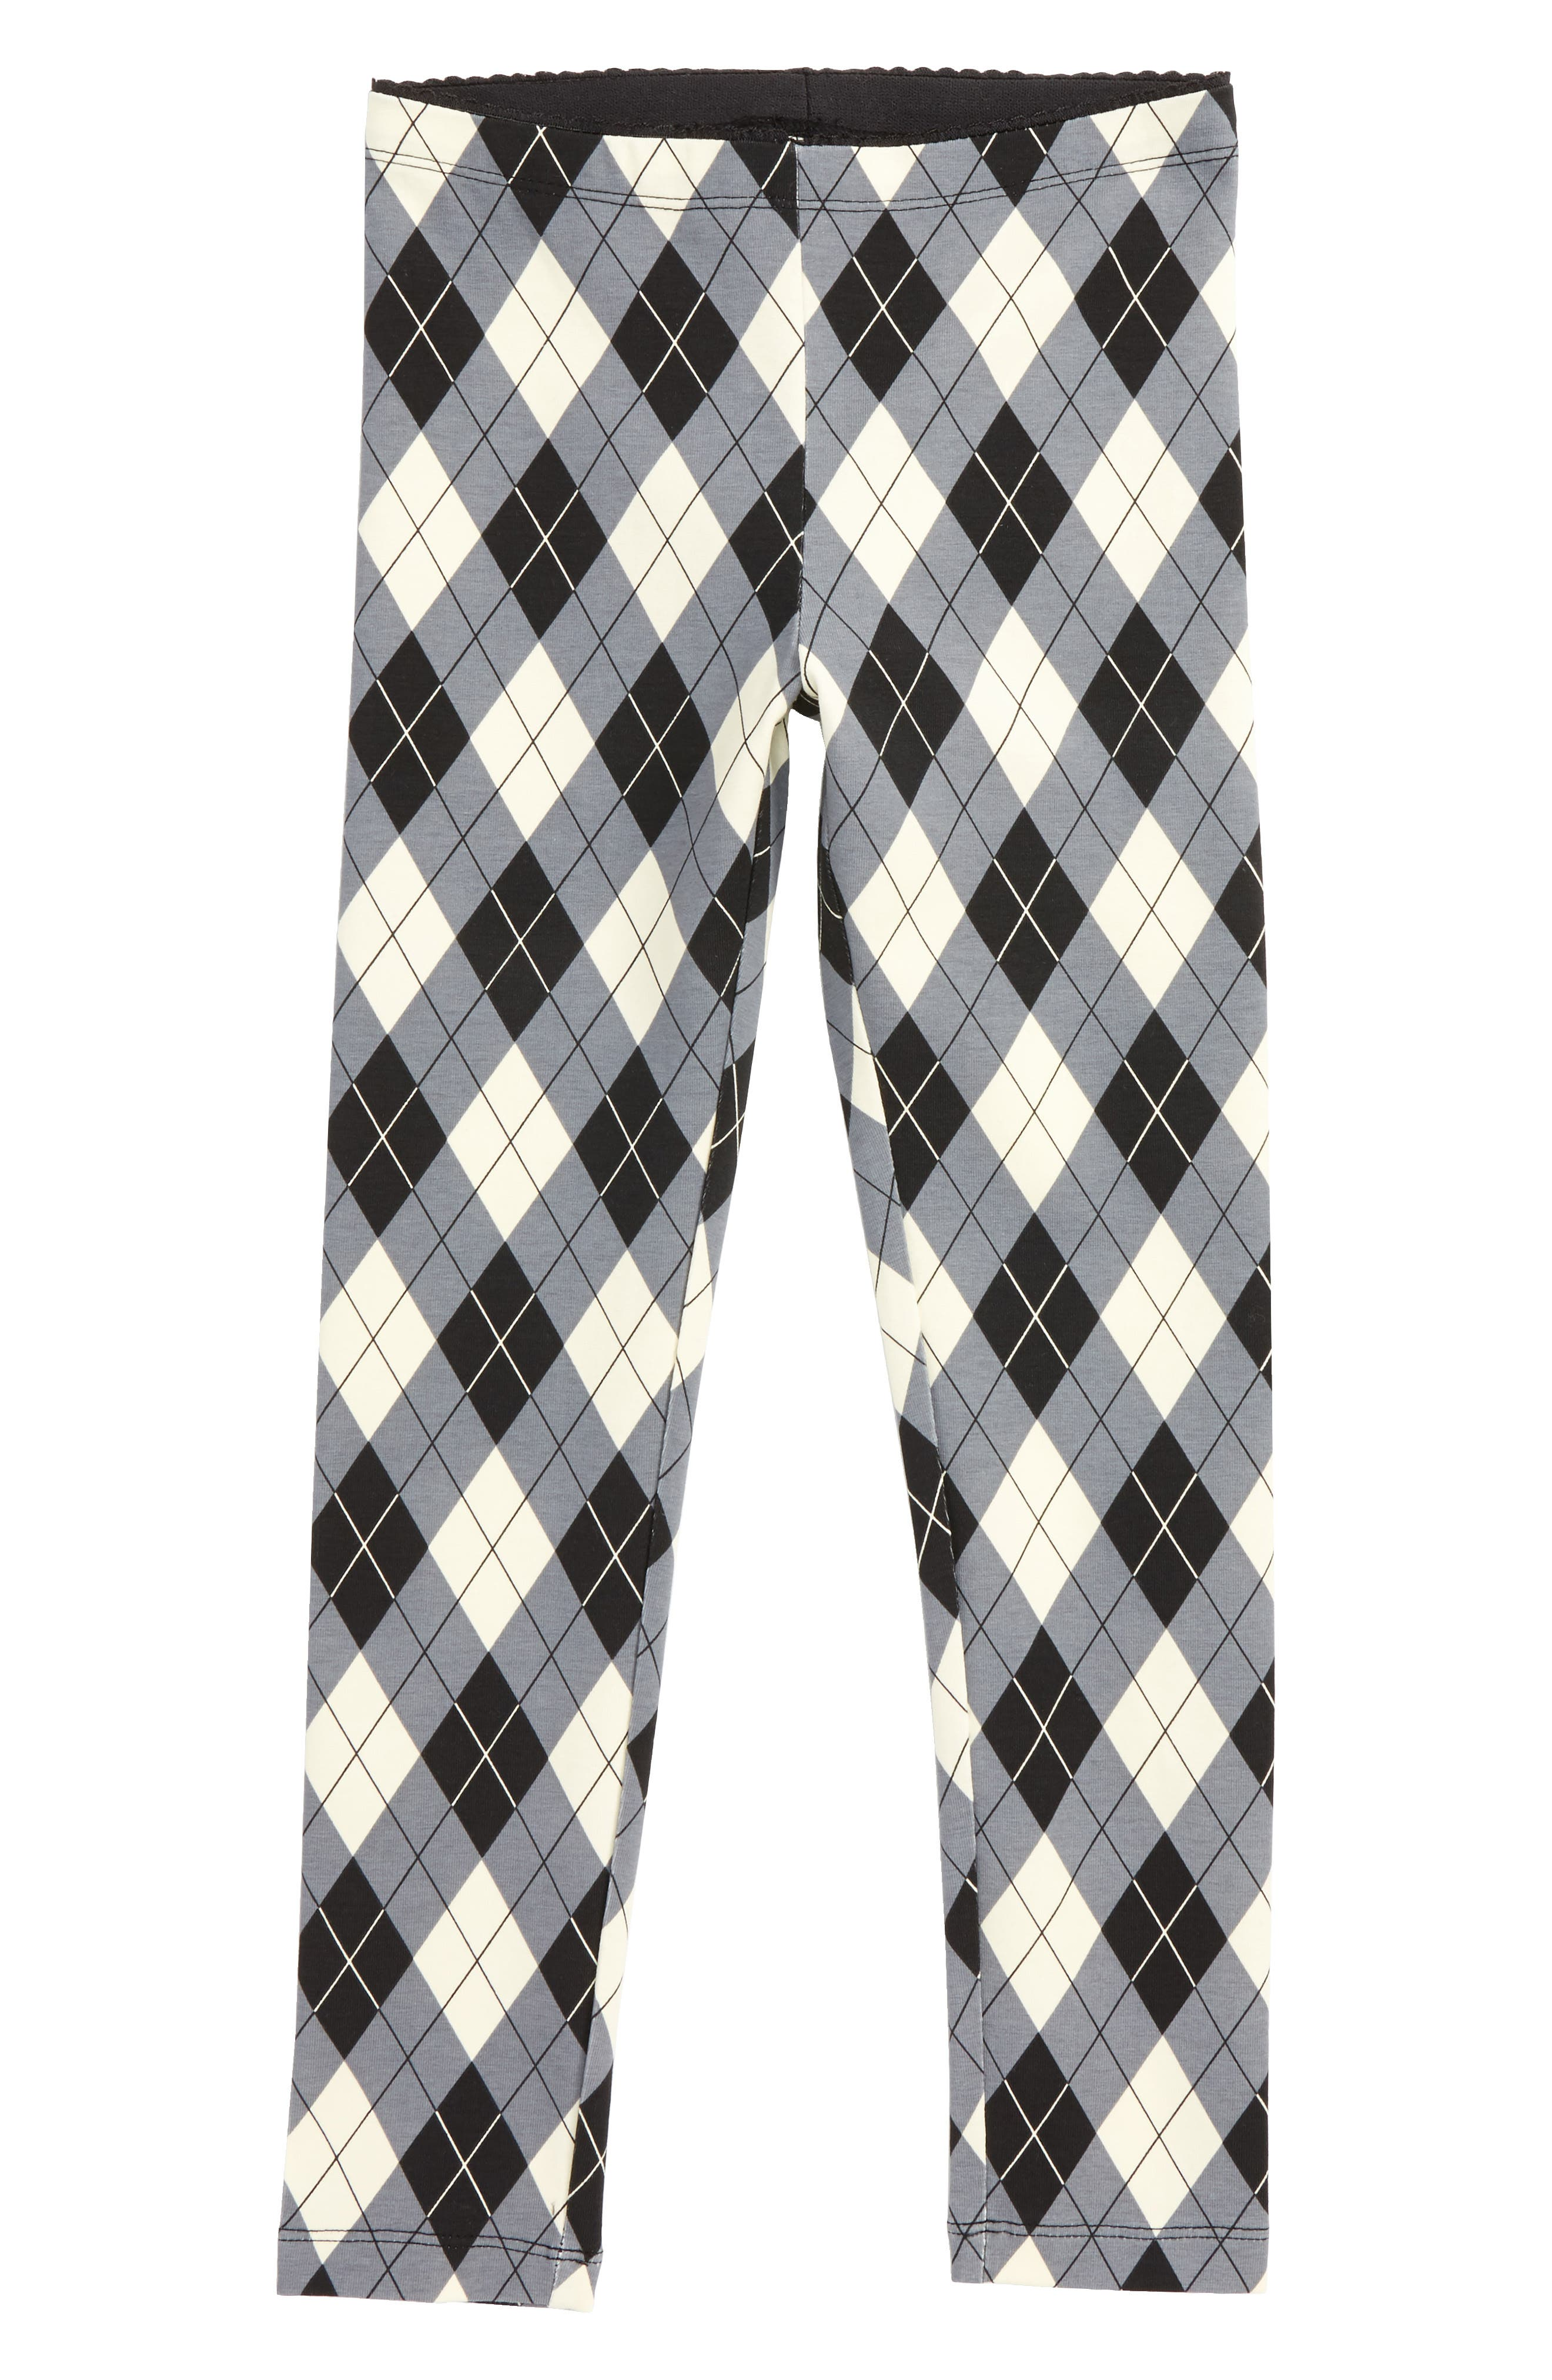 Main Image - Tea Collection Argyle Plaid Leggings (Toddler Girls, Little Girls & Big Girls)